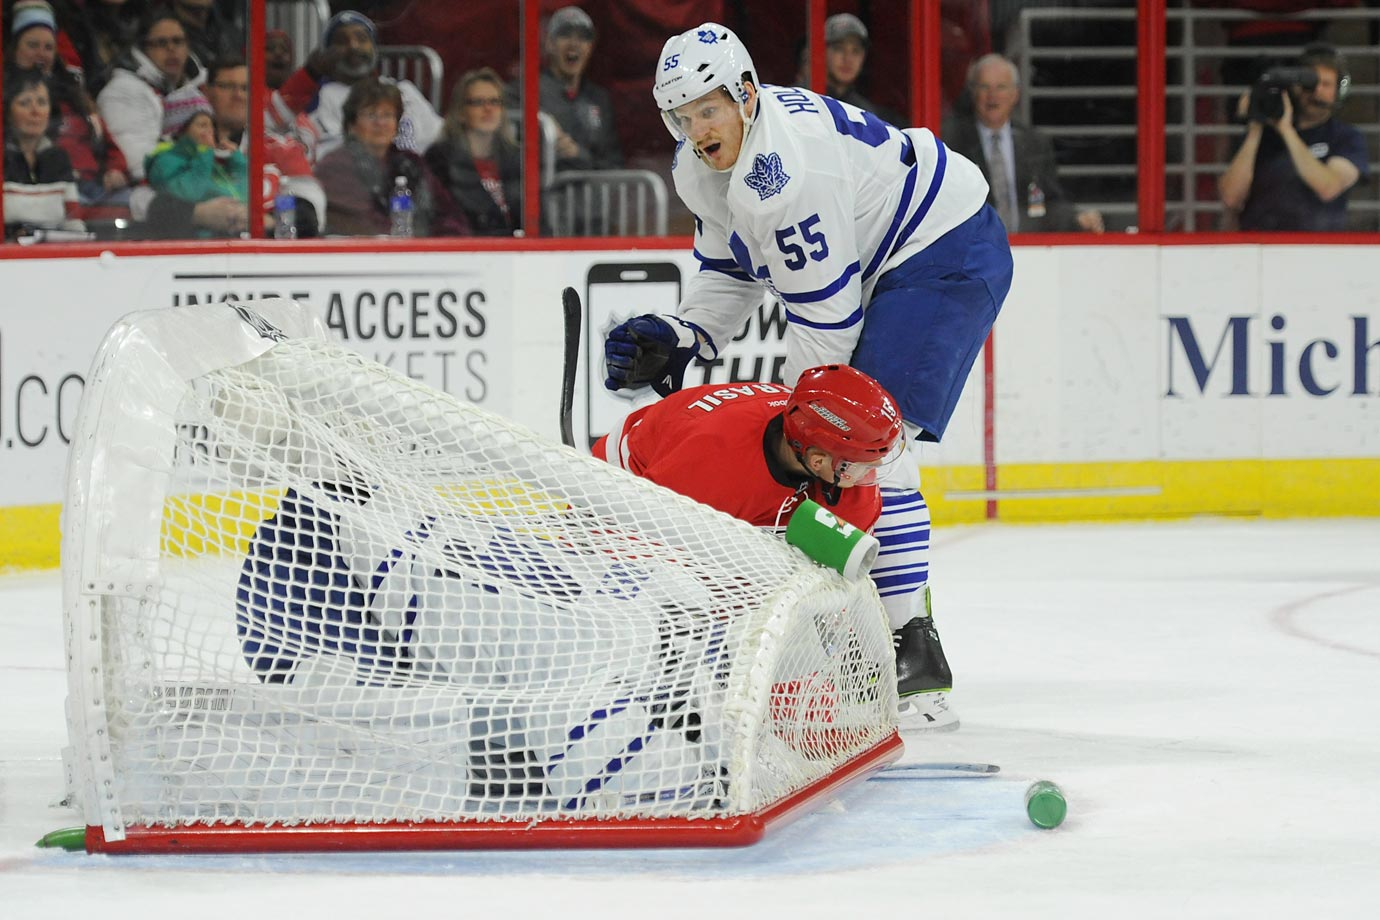 James Reimer, the Toronto Maple Leafs goalie, is covered by the goal during a game against the Carolina Hurricanes.  Carolina defeated Toronto 2-1.